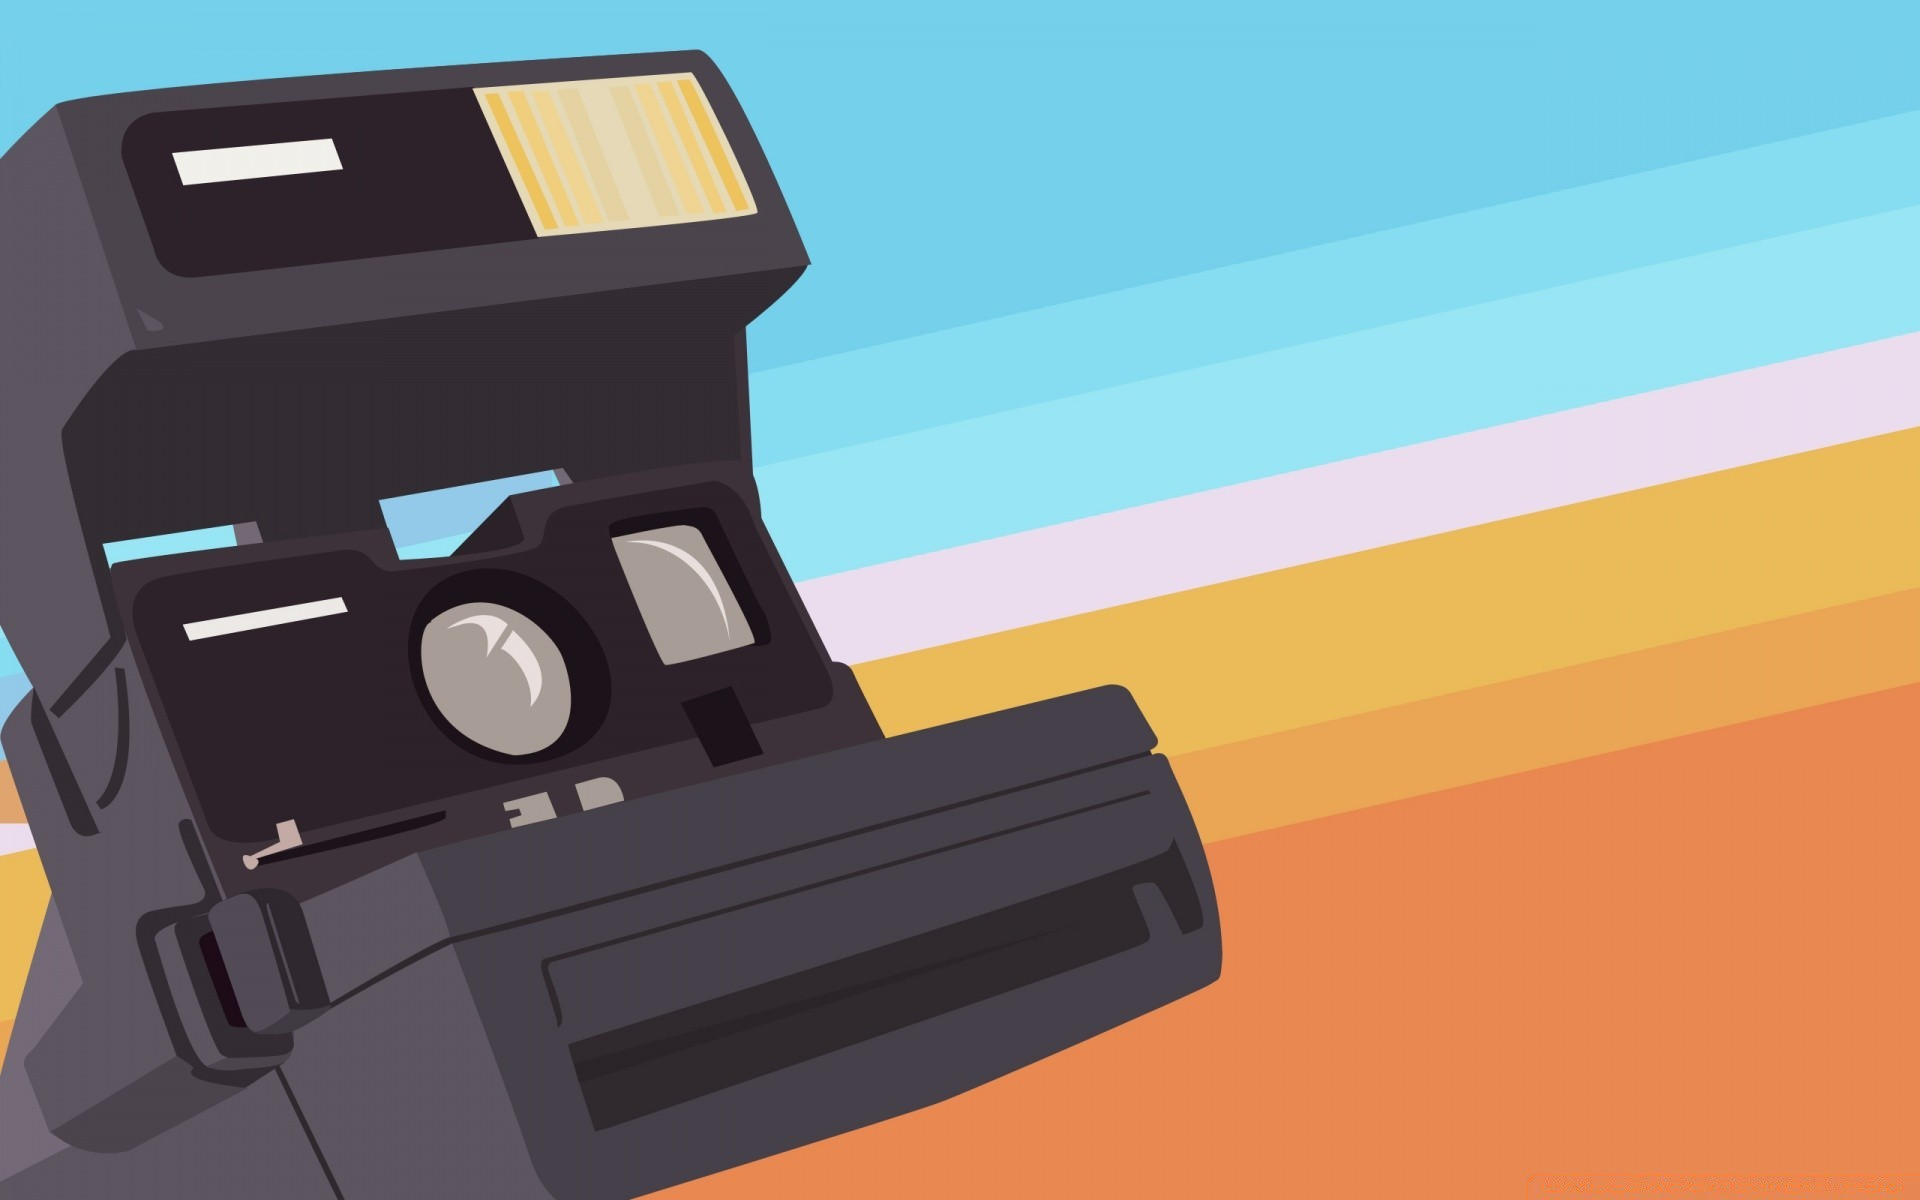 1920x1200 Polaroid Camera Vector Art. Iphone Wallpapers For Free.